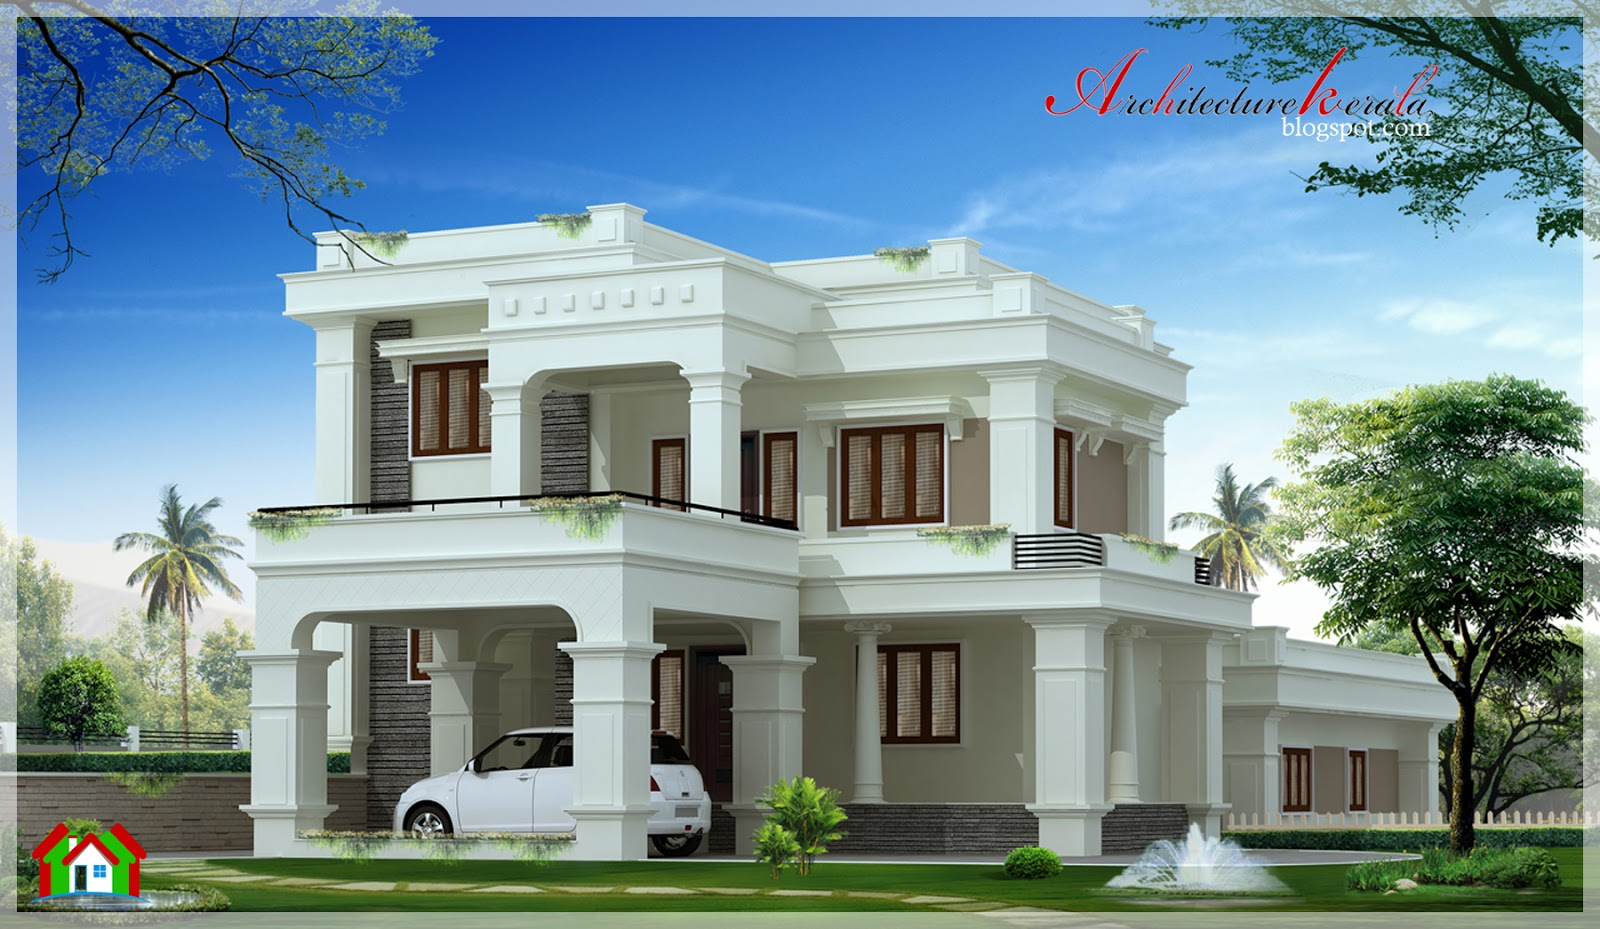 Architecture kerala 2900 square feet beautiful kerala for Beautiful architecture houses